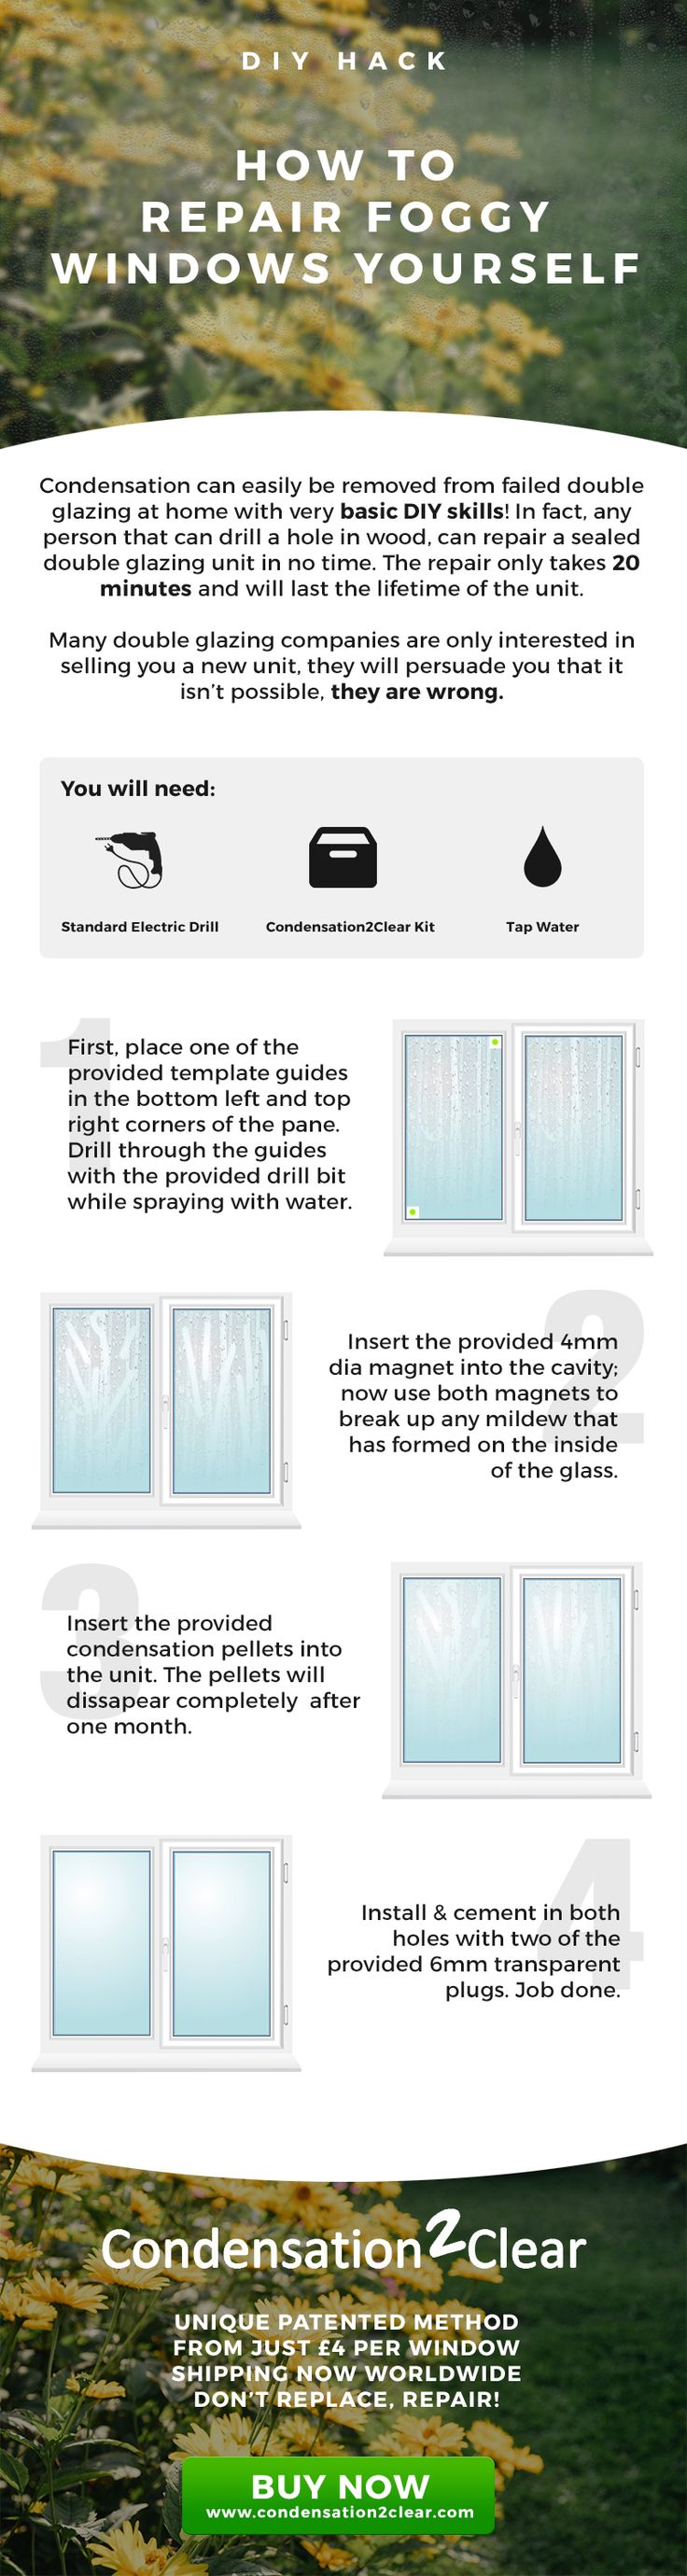 Condensation can easily be removed from failed foggy double glazing windows at home with very basic DIY skills! In fact, any person that can drill a hole in wood, can repair a sealed double glazing unit in no time. The repair only takes 20 minutes and will last the lifetime of the unit. Many double glazing companies are only interested in selling you a new unit, they will persuade you that it isn't possible, they are wrong.